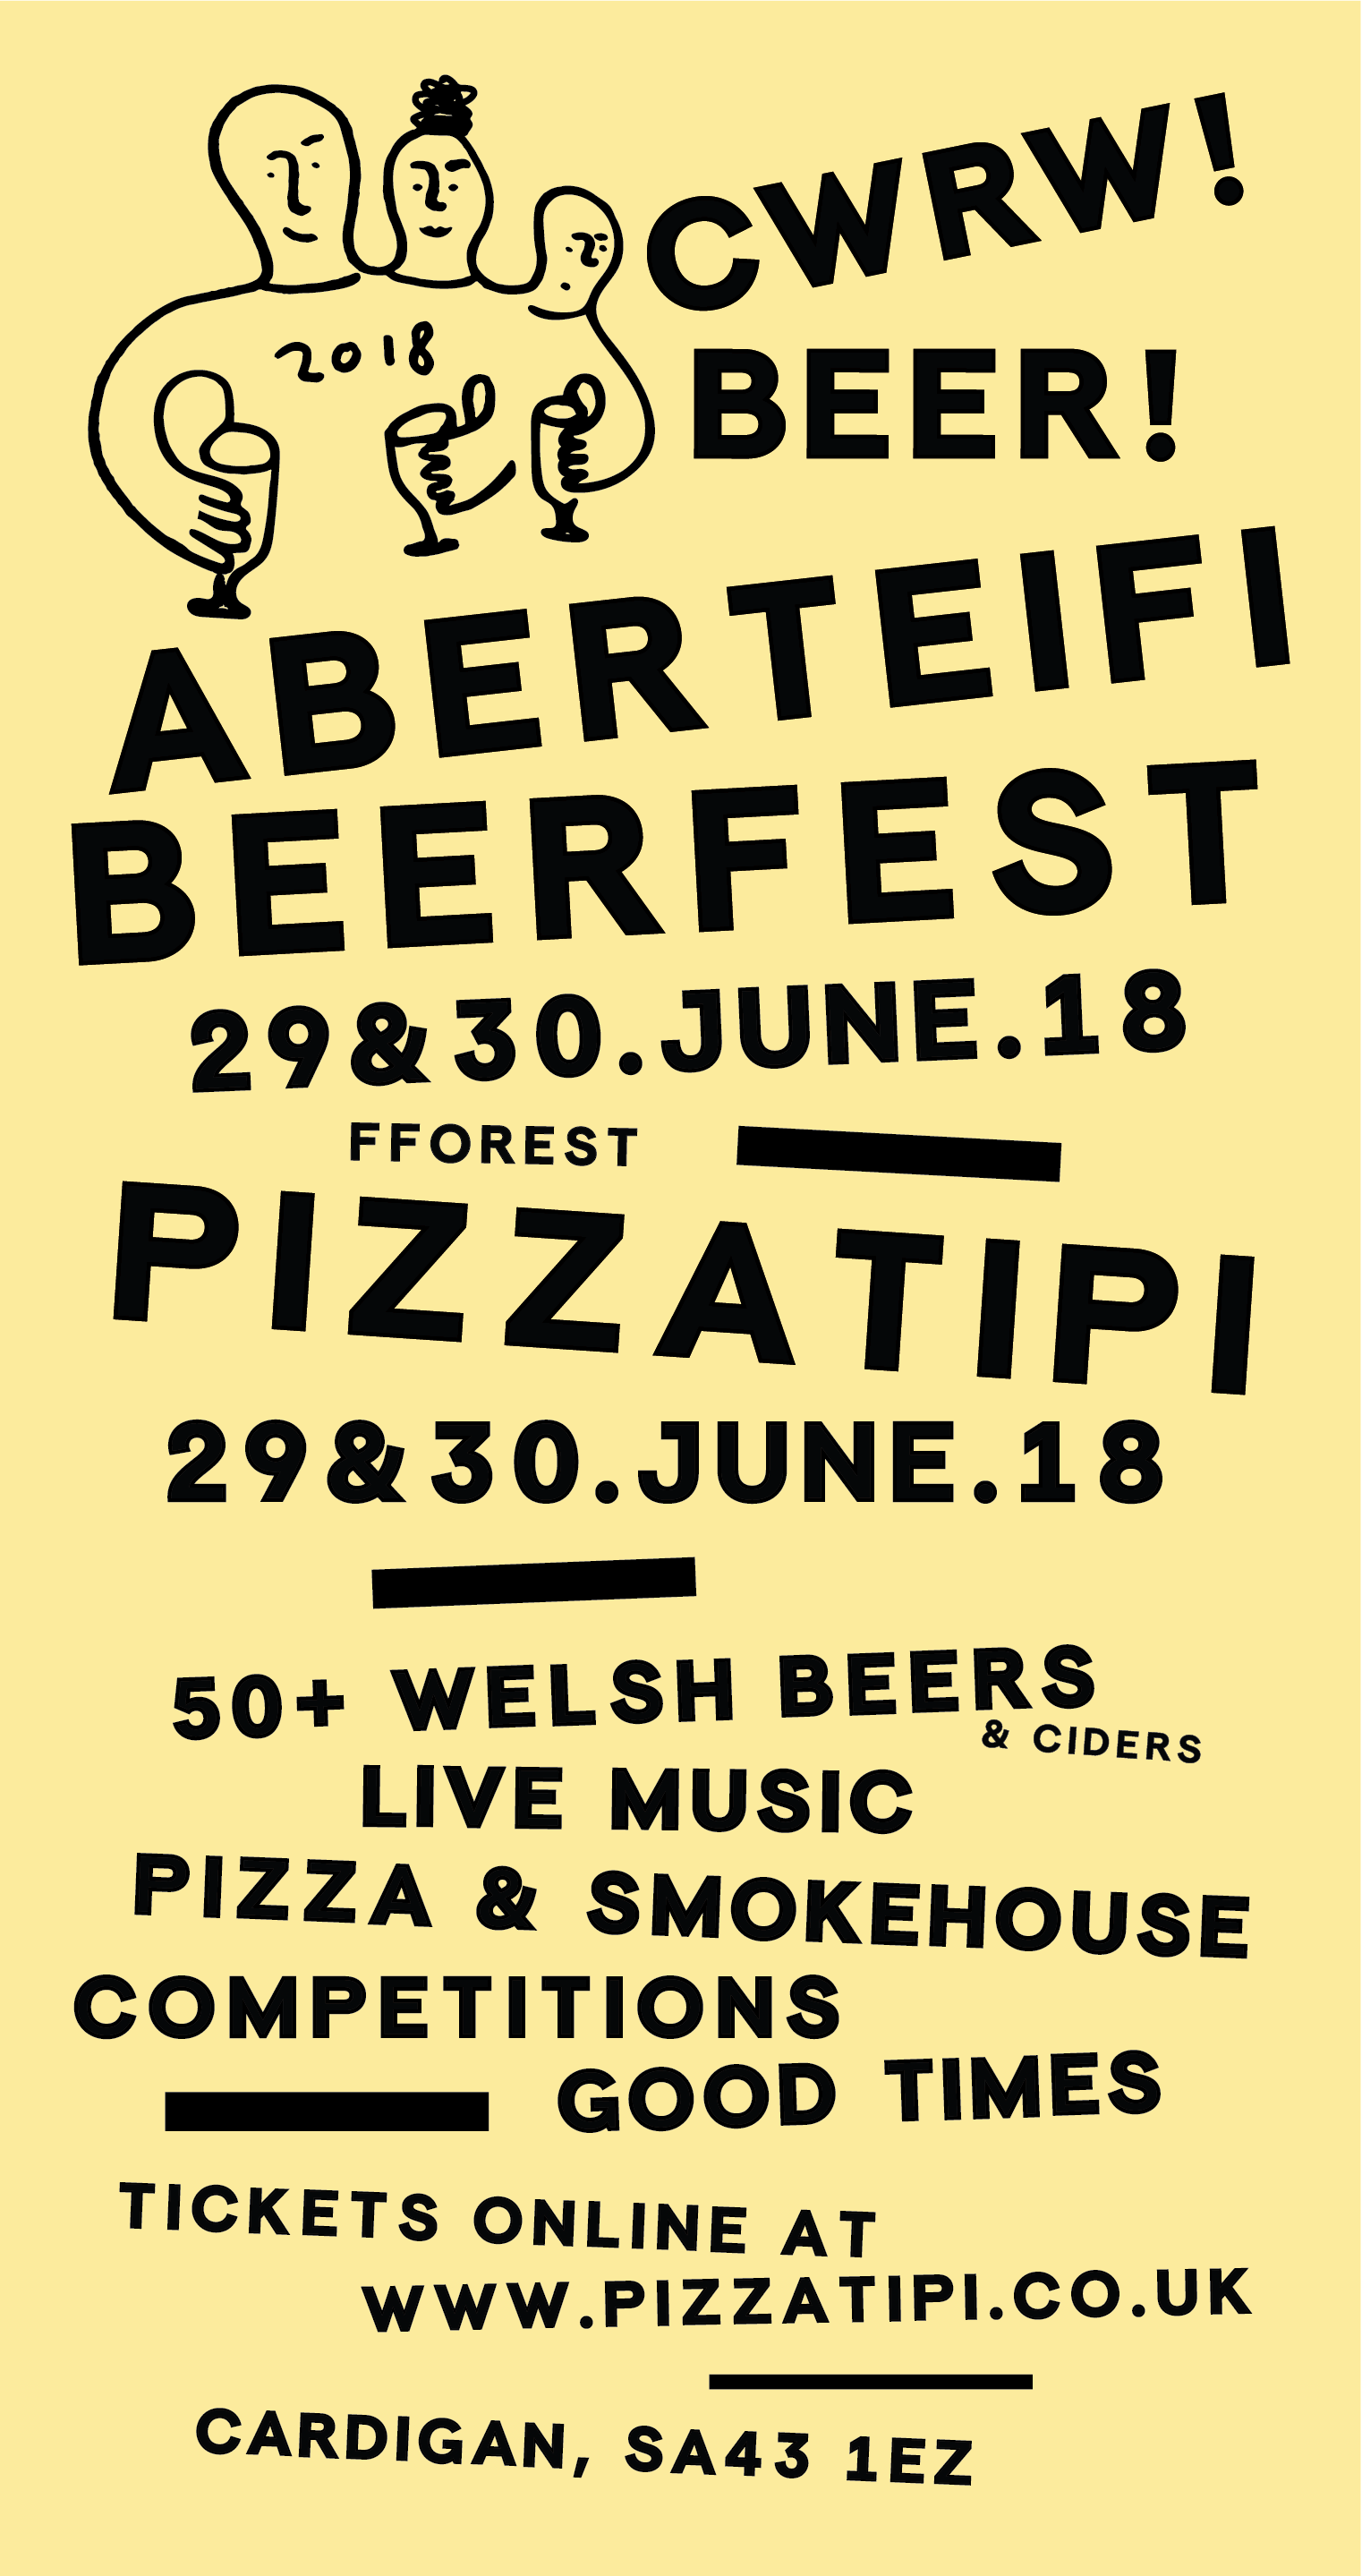 beerfest 2018 poster-13.png